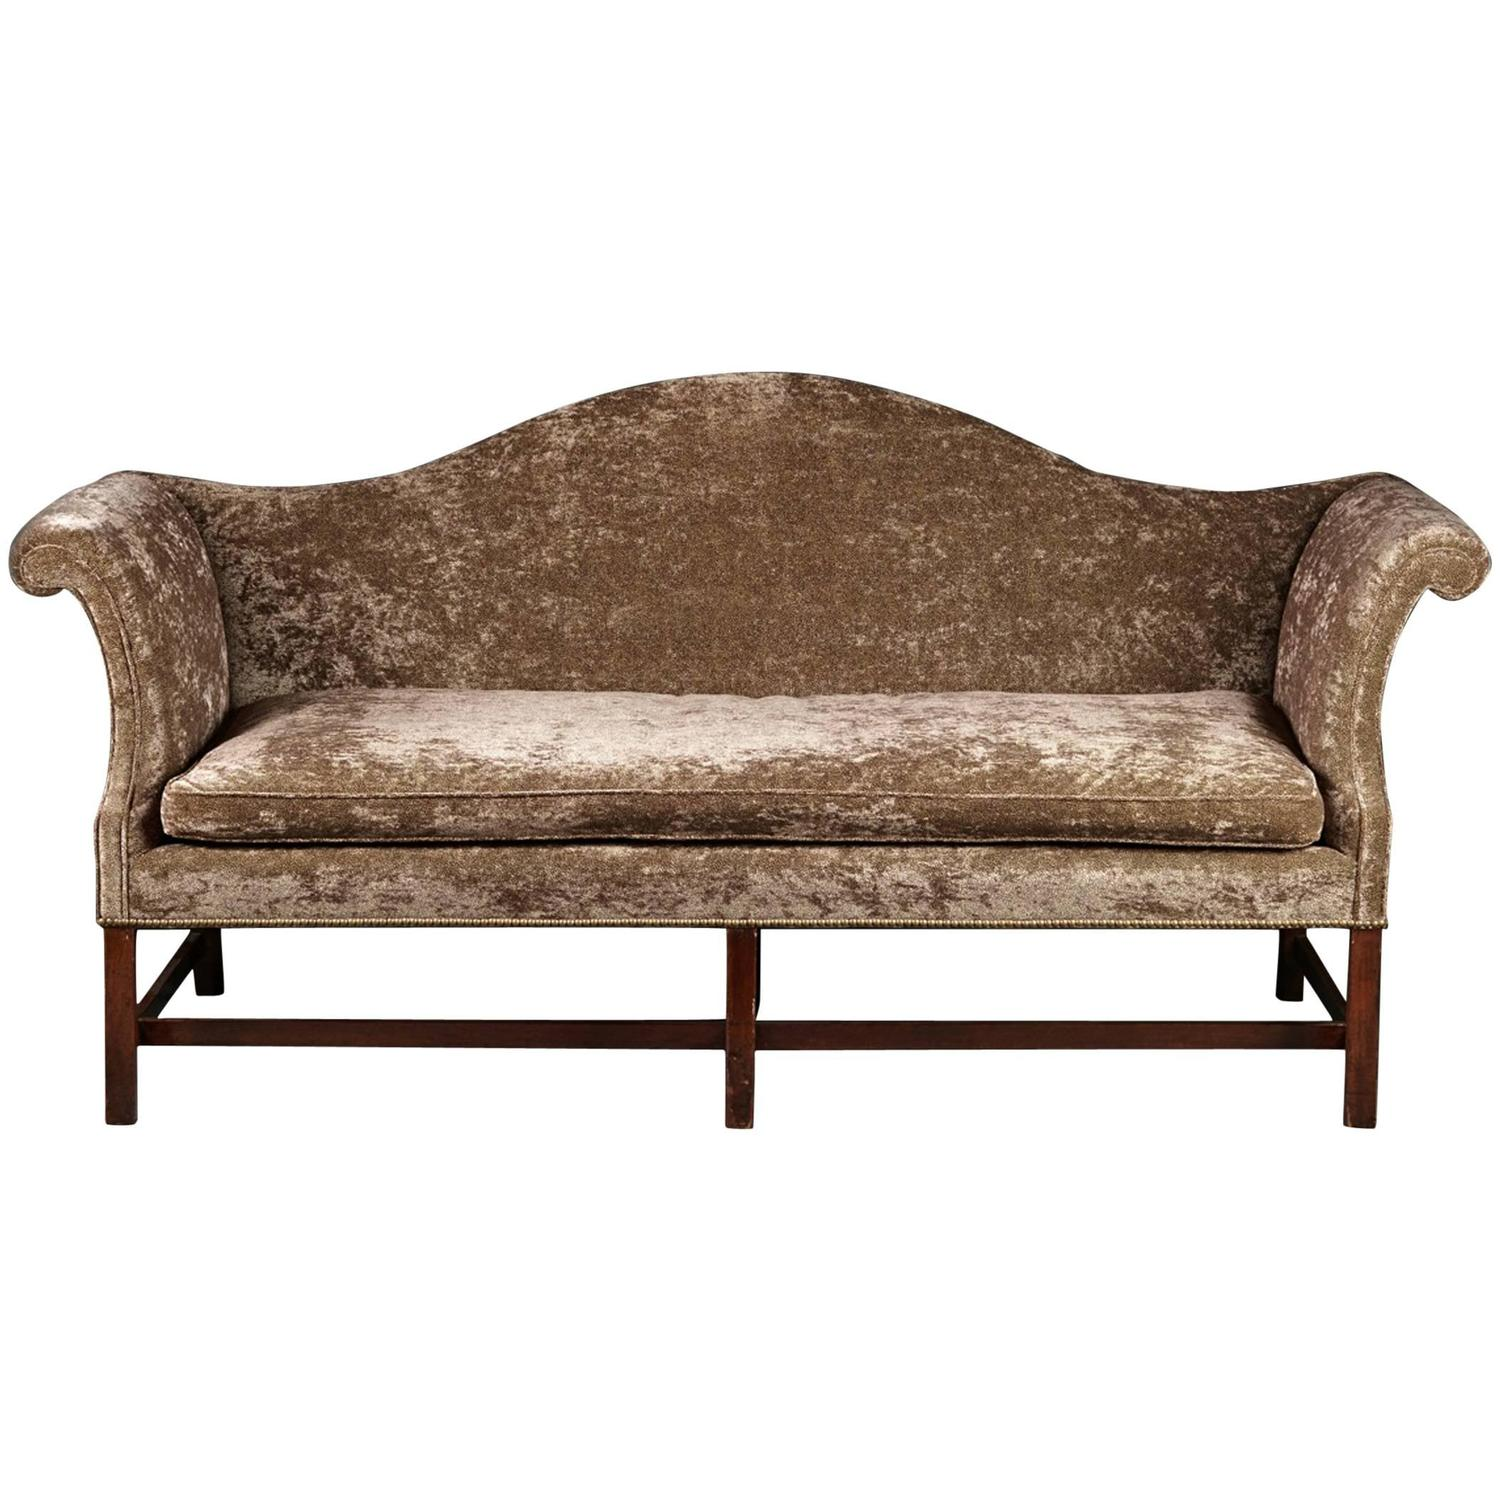 Fine 18th Century Mahogany Camelback Sofa In Modern Fabric At 1stdibs